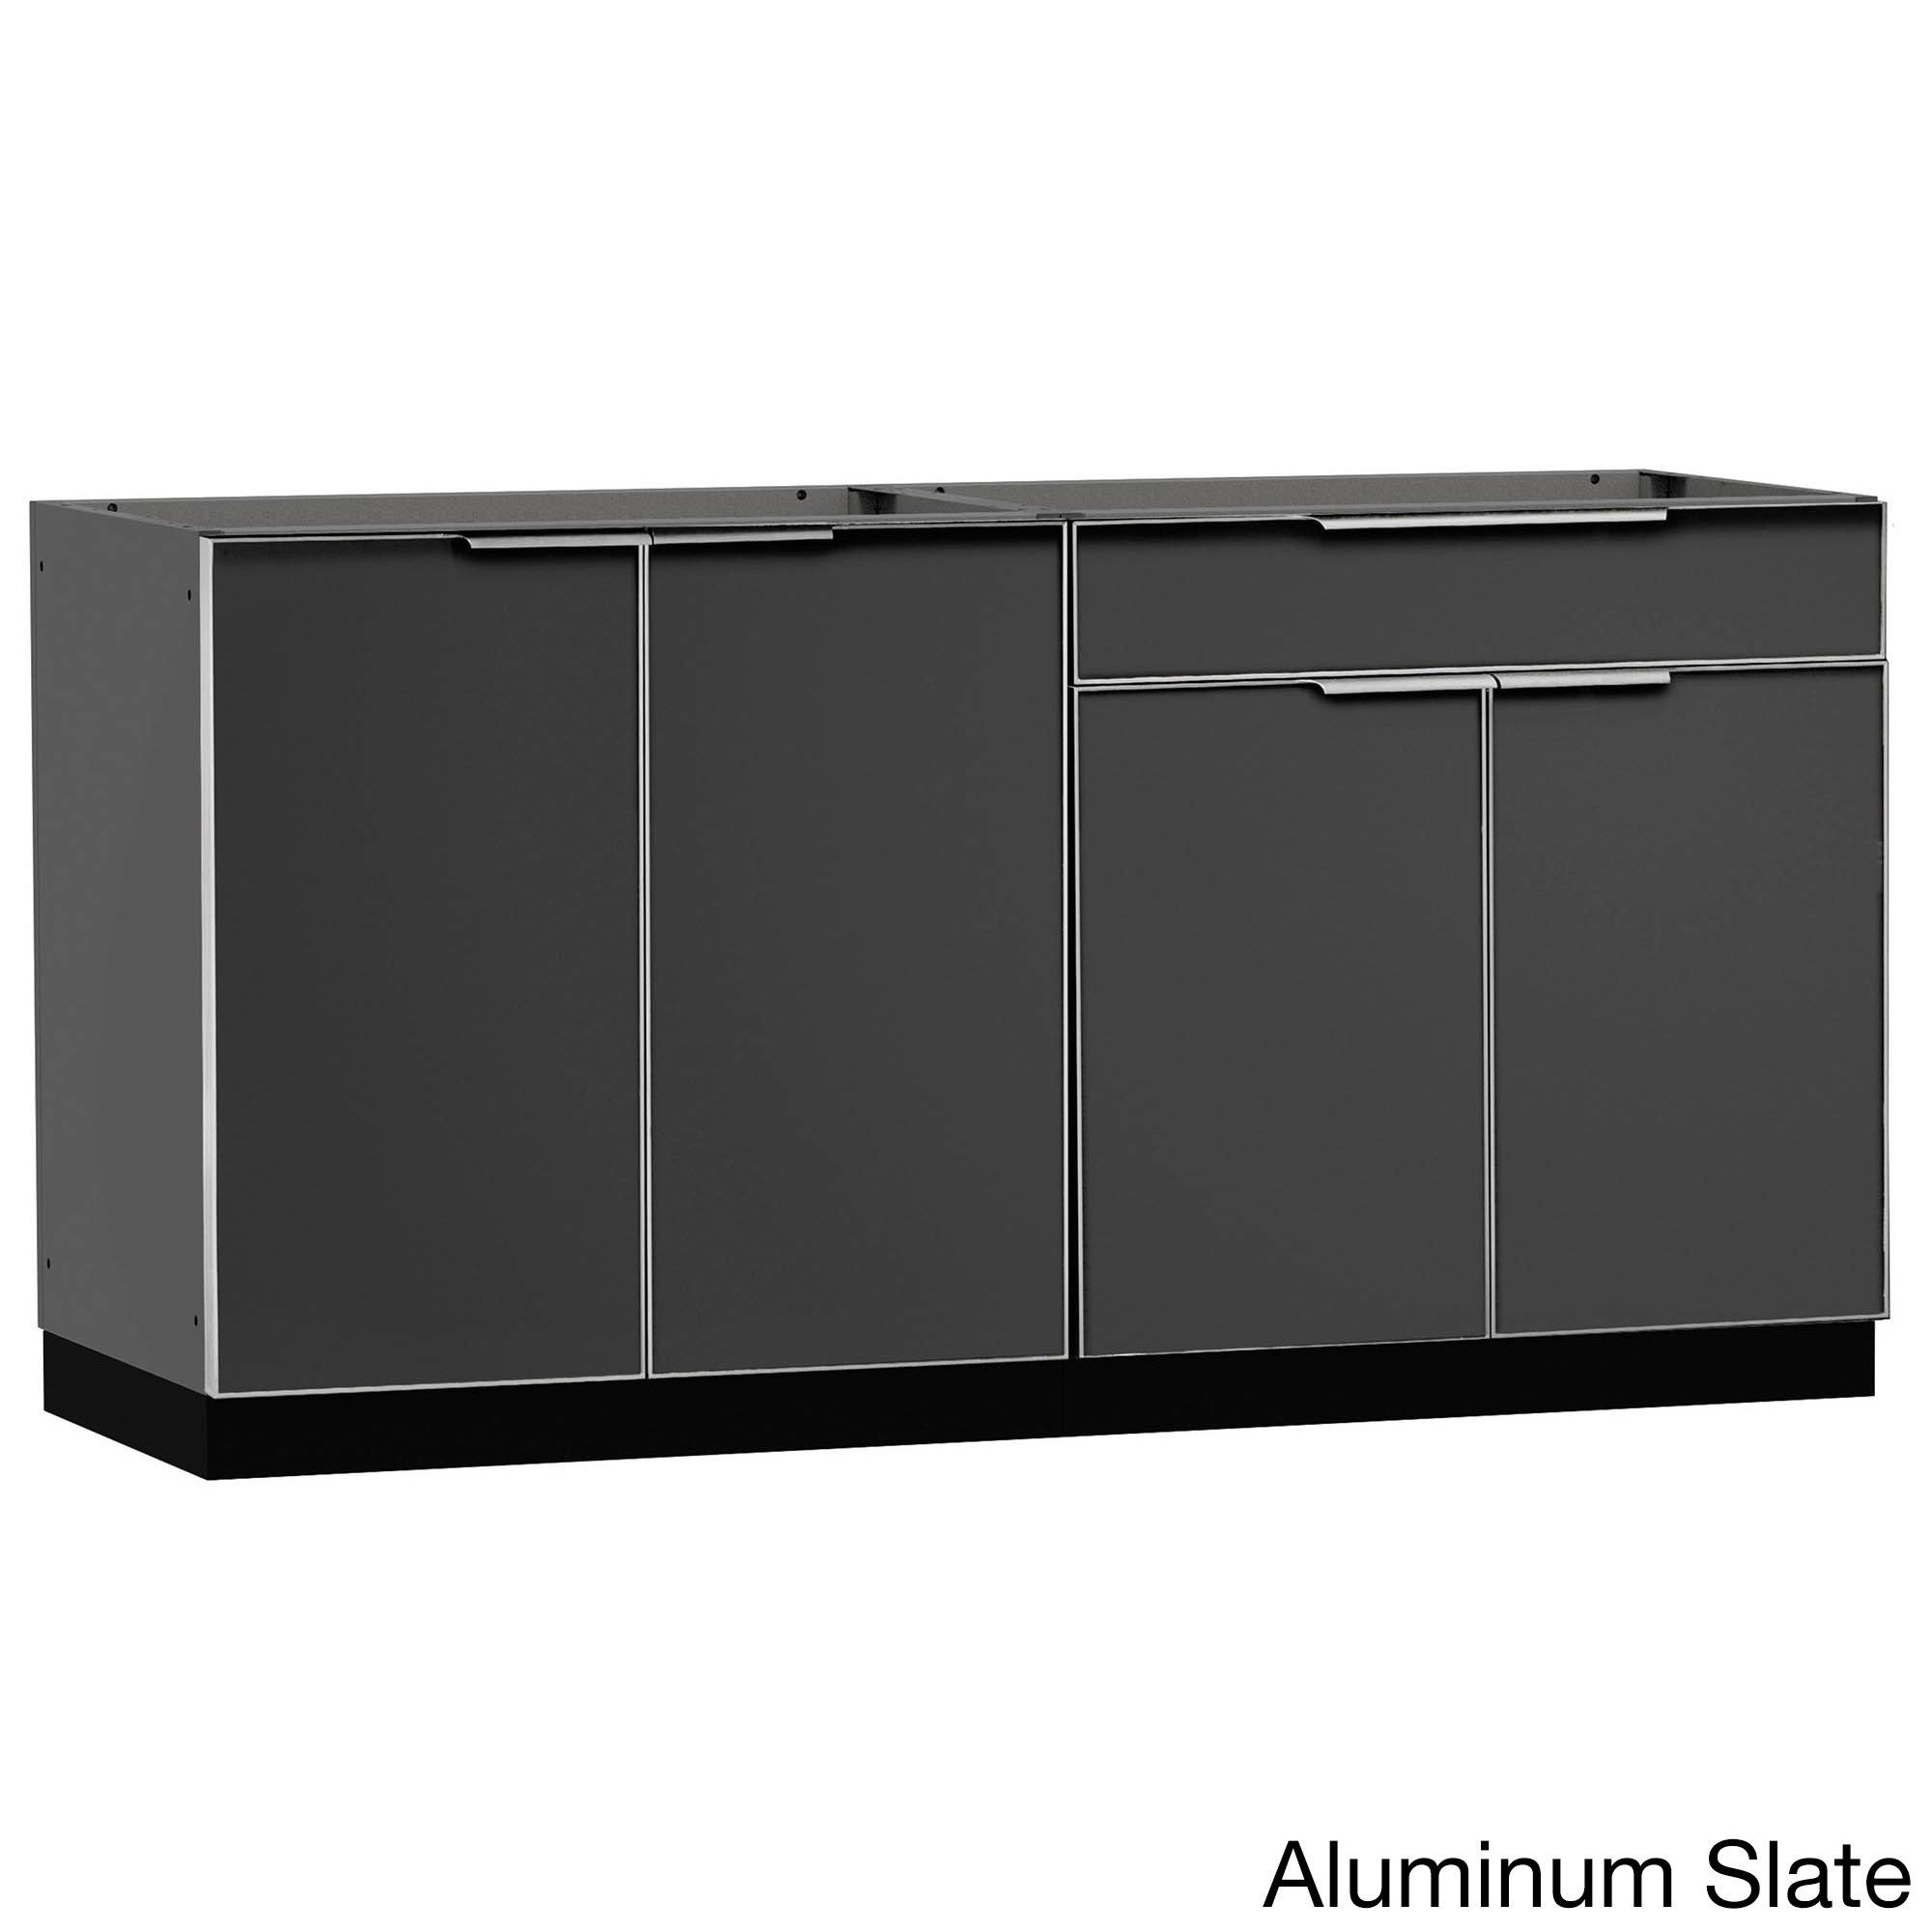 Newage Products Aluminum Stainless Steel 64 Inch X 24 Inch 2 Piece Outdoor Kitchen Storage Modular Outdoor Kitchens Outdoor Kitchen Cabinets Outdoor Kitchen Countertops